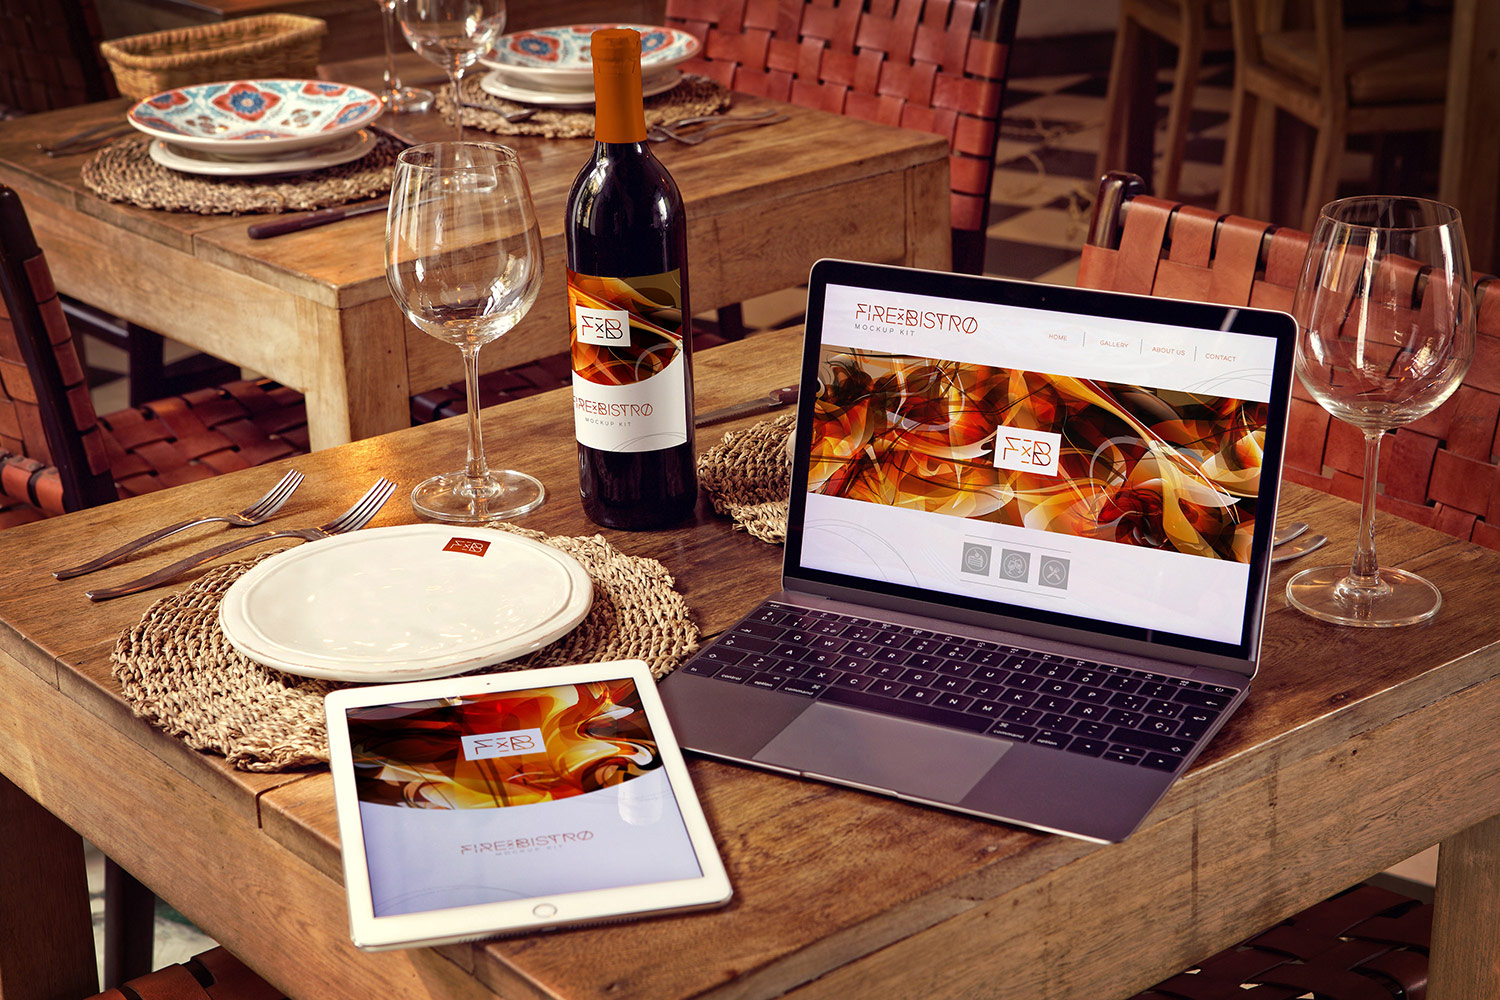 Wine Bottle iPad Air 2 Macbook Mockup